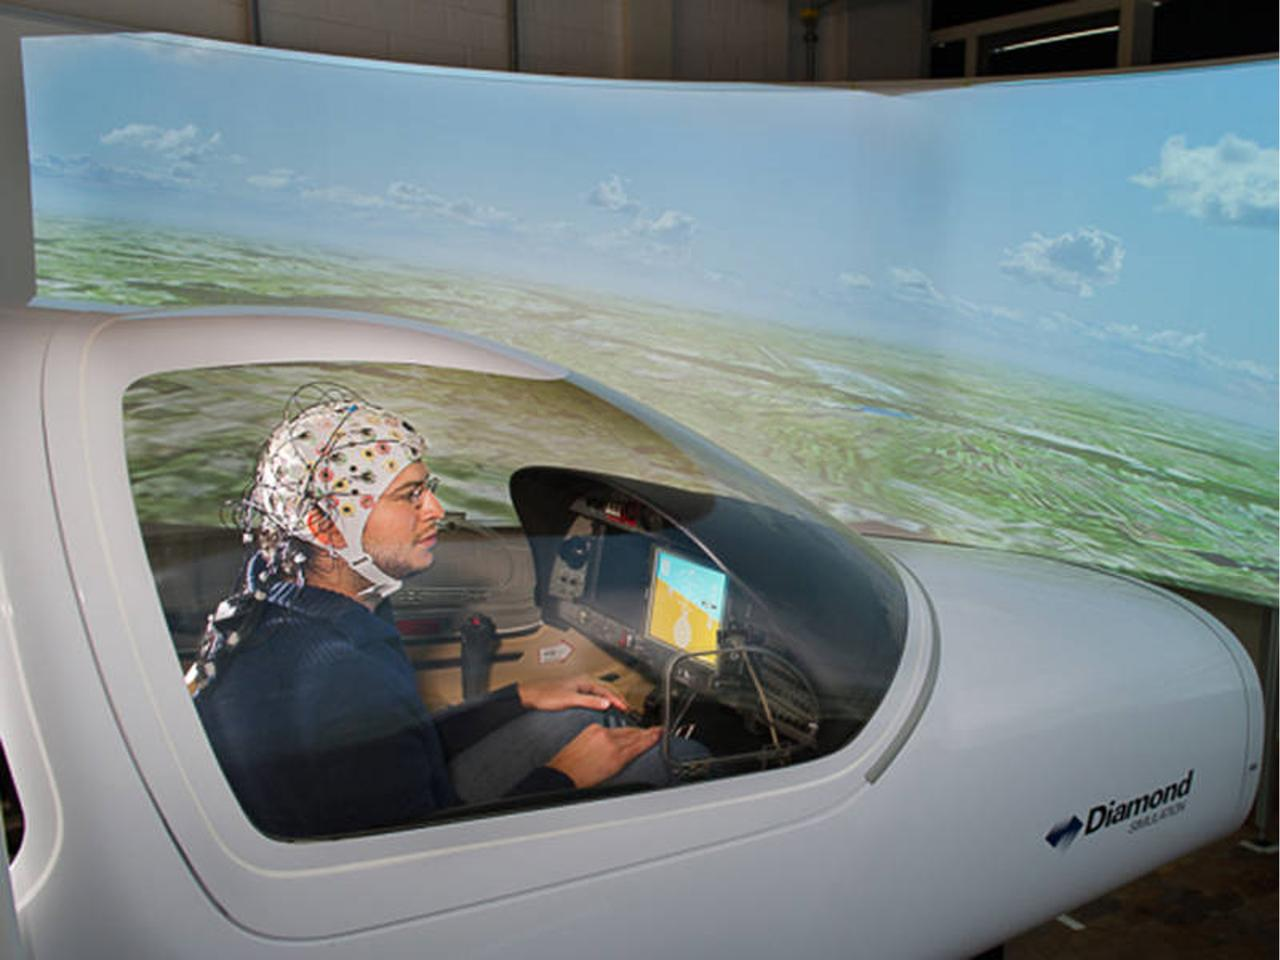 The technology has been tested in a flight simulator